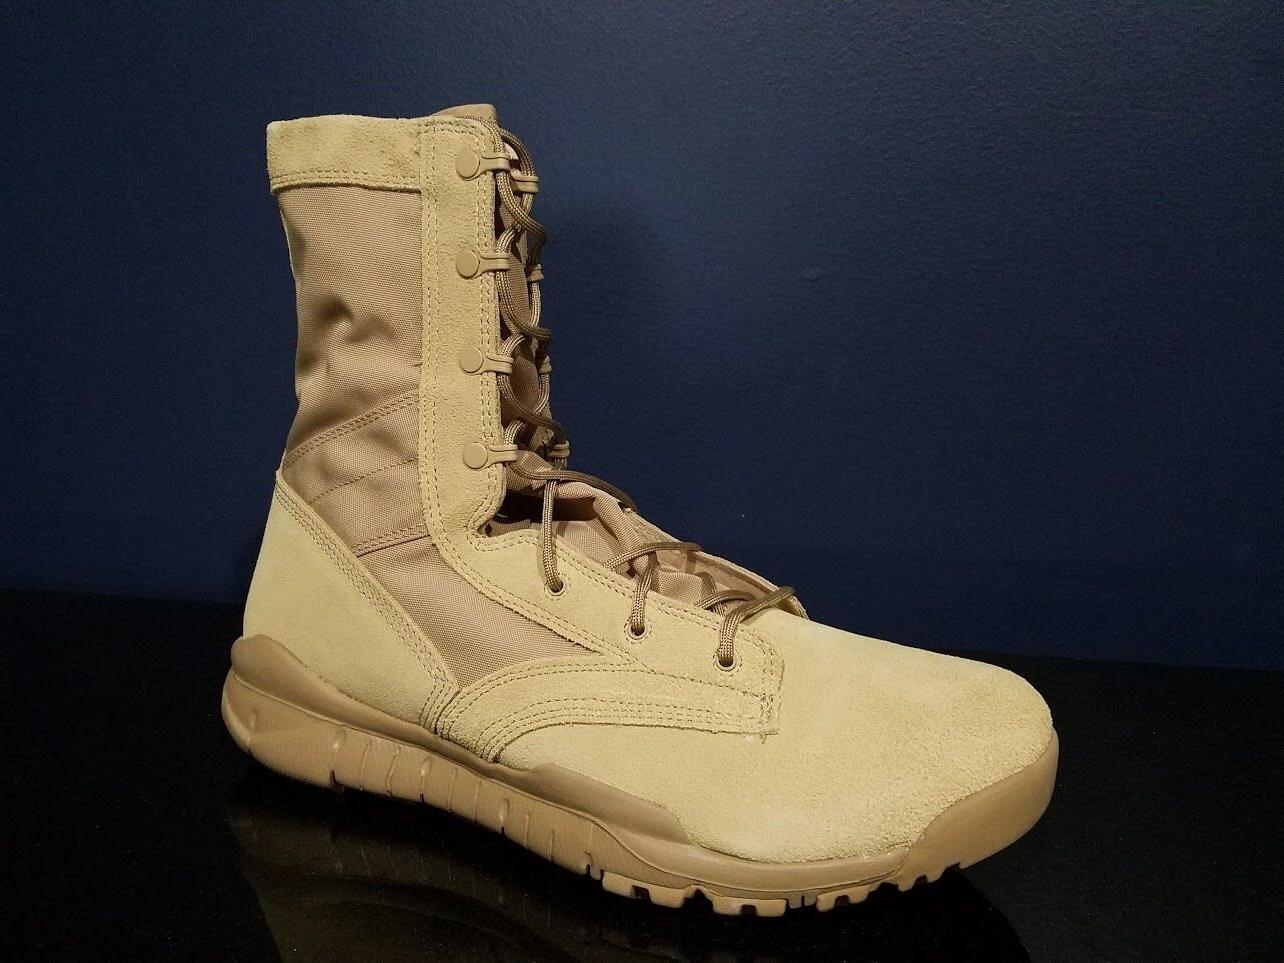 Nike Special Field Boots Leather British Khaki 688973 200 NE